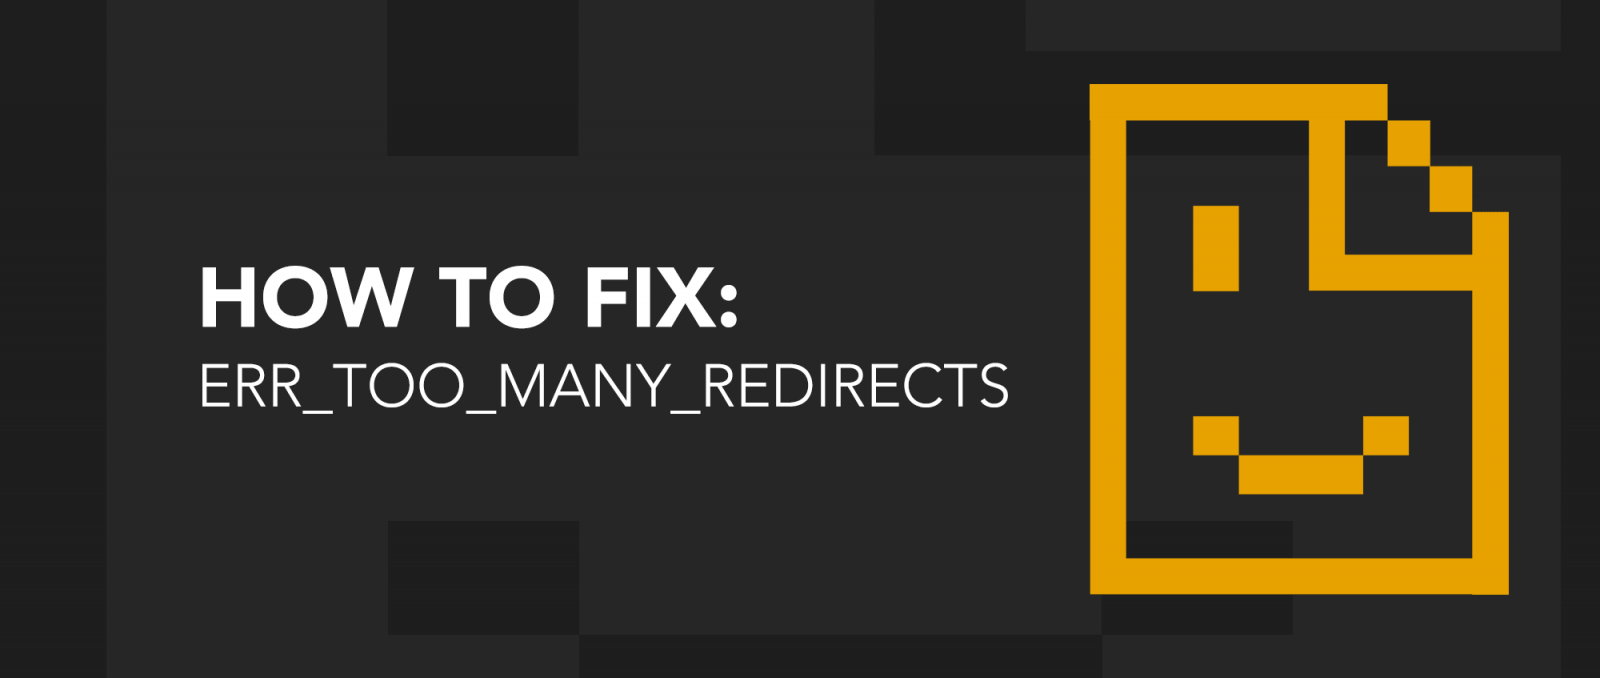 how to fix too many redirects